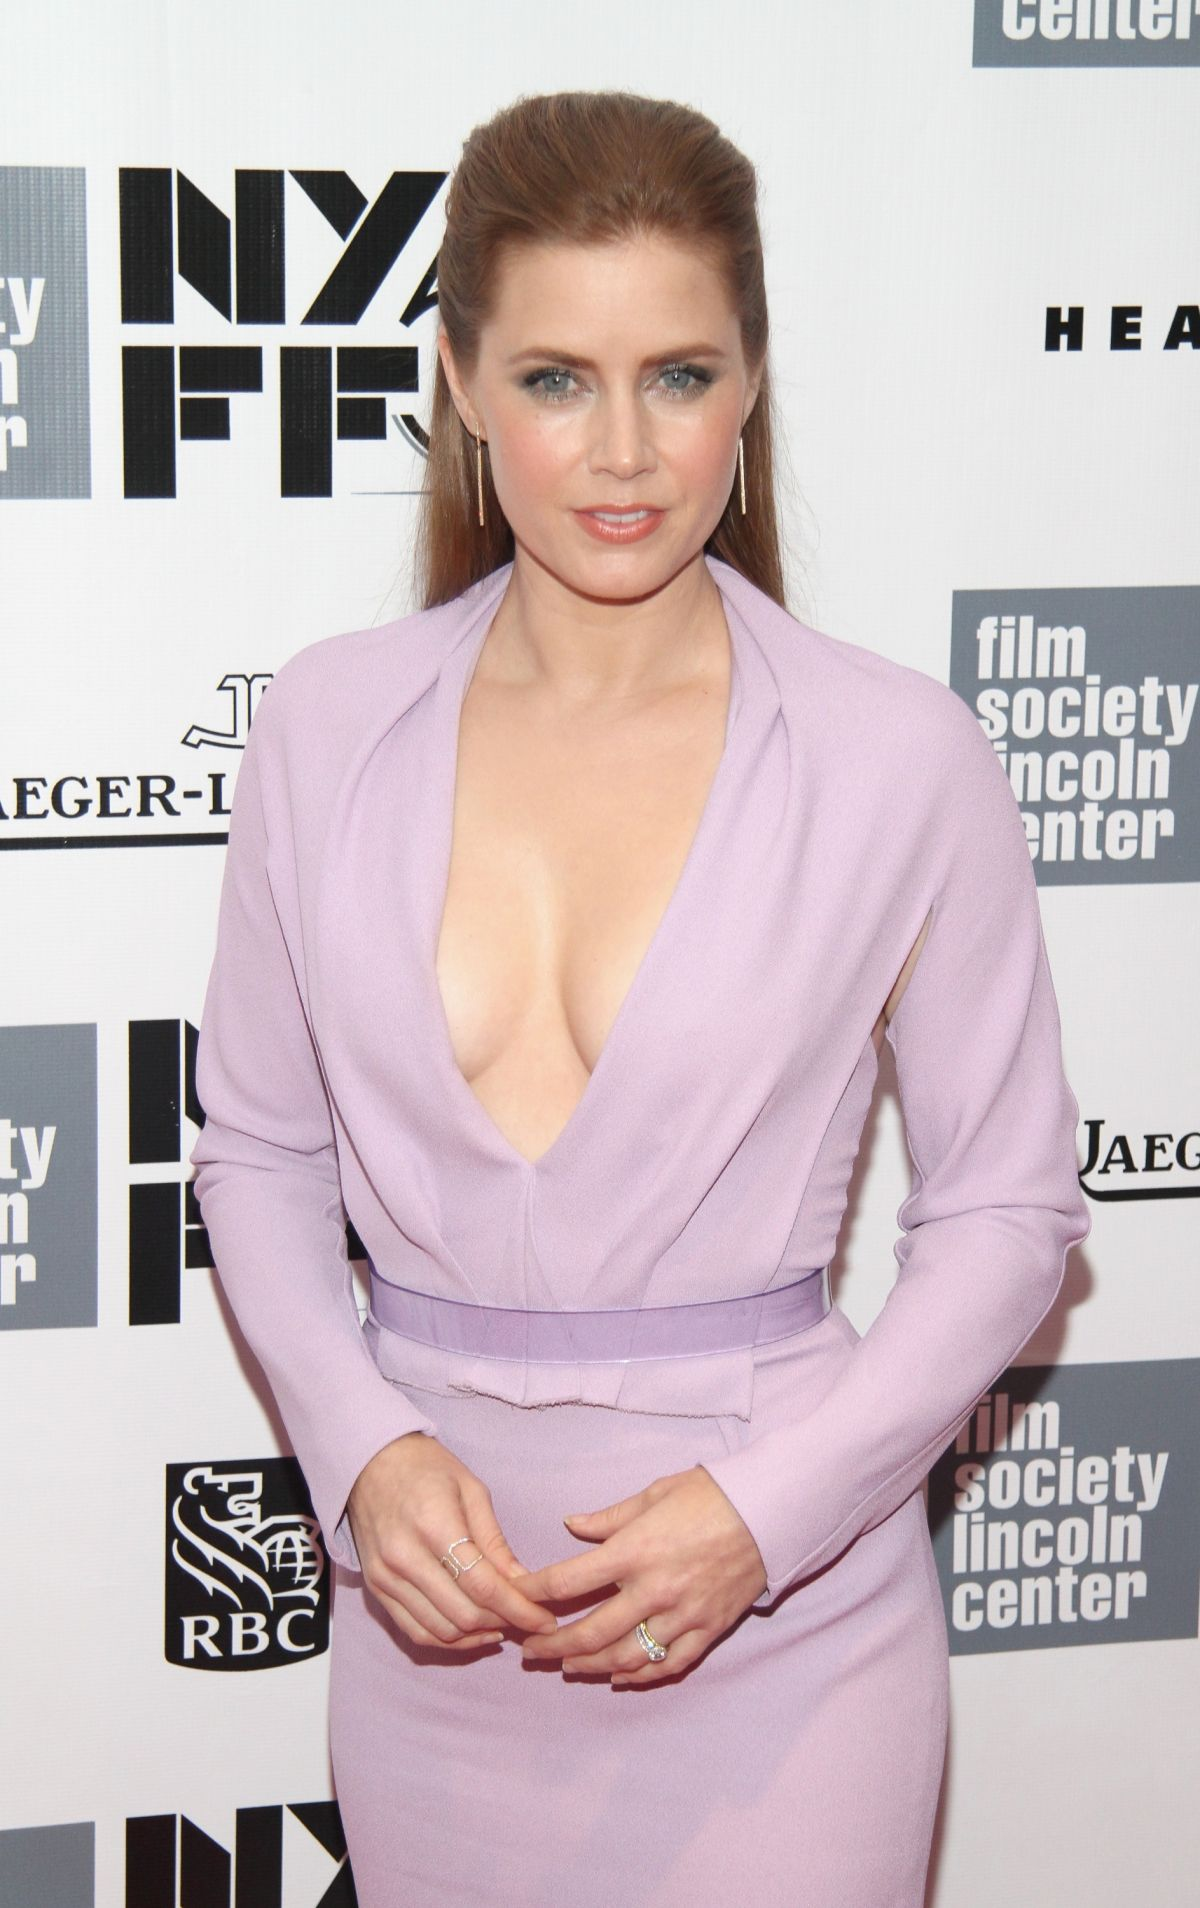 amy-adams-at-closing-night-gala-presentation-of-her-at-new-york-film-festival_3.jpg - 223.09 KB